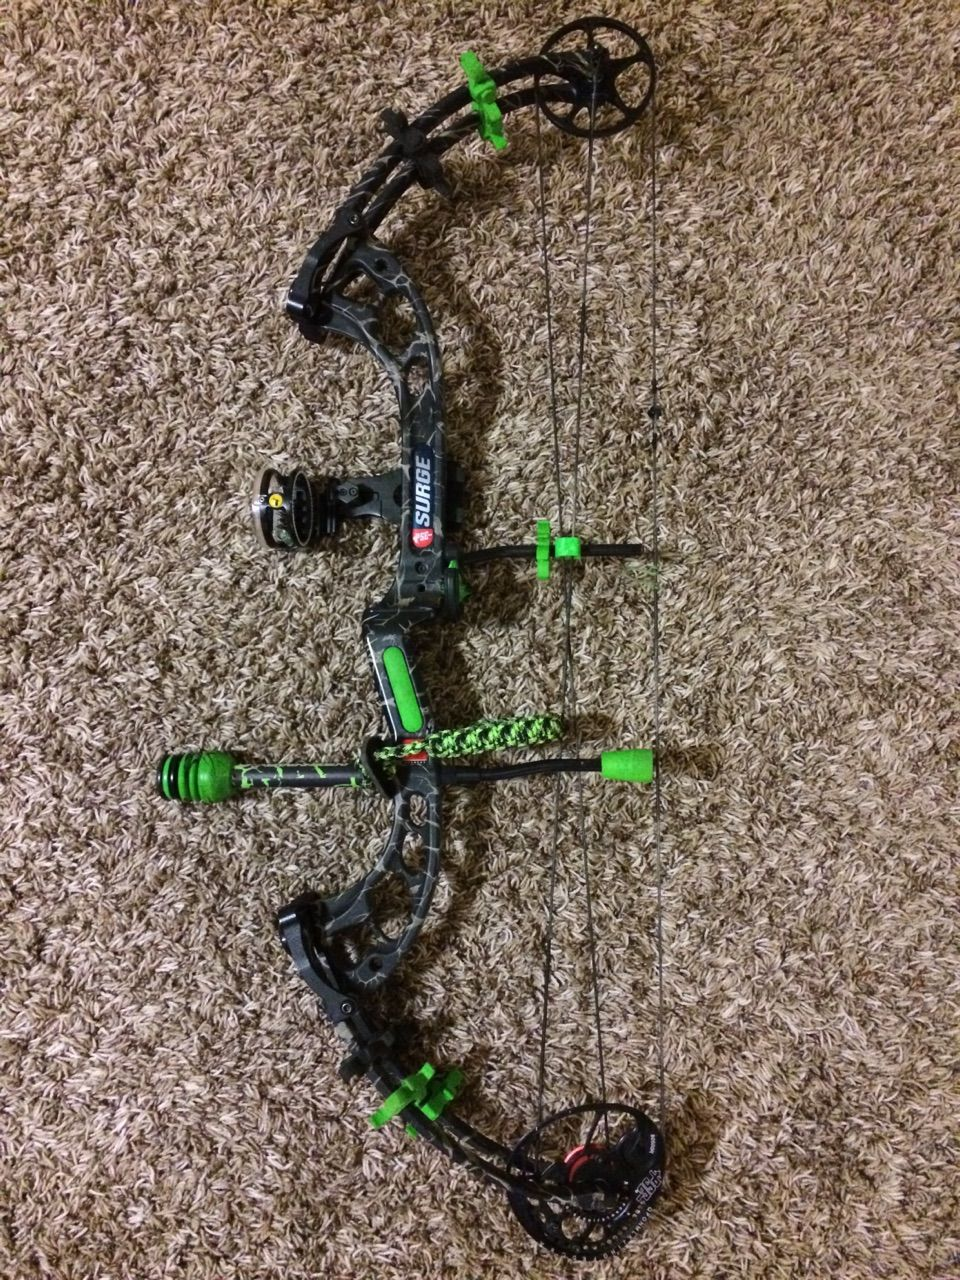 PSE Surge Compound Bow in Skillworks finish with green